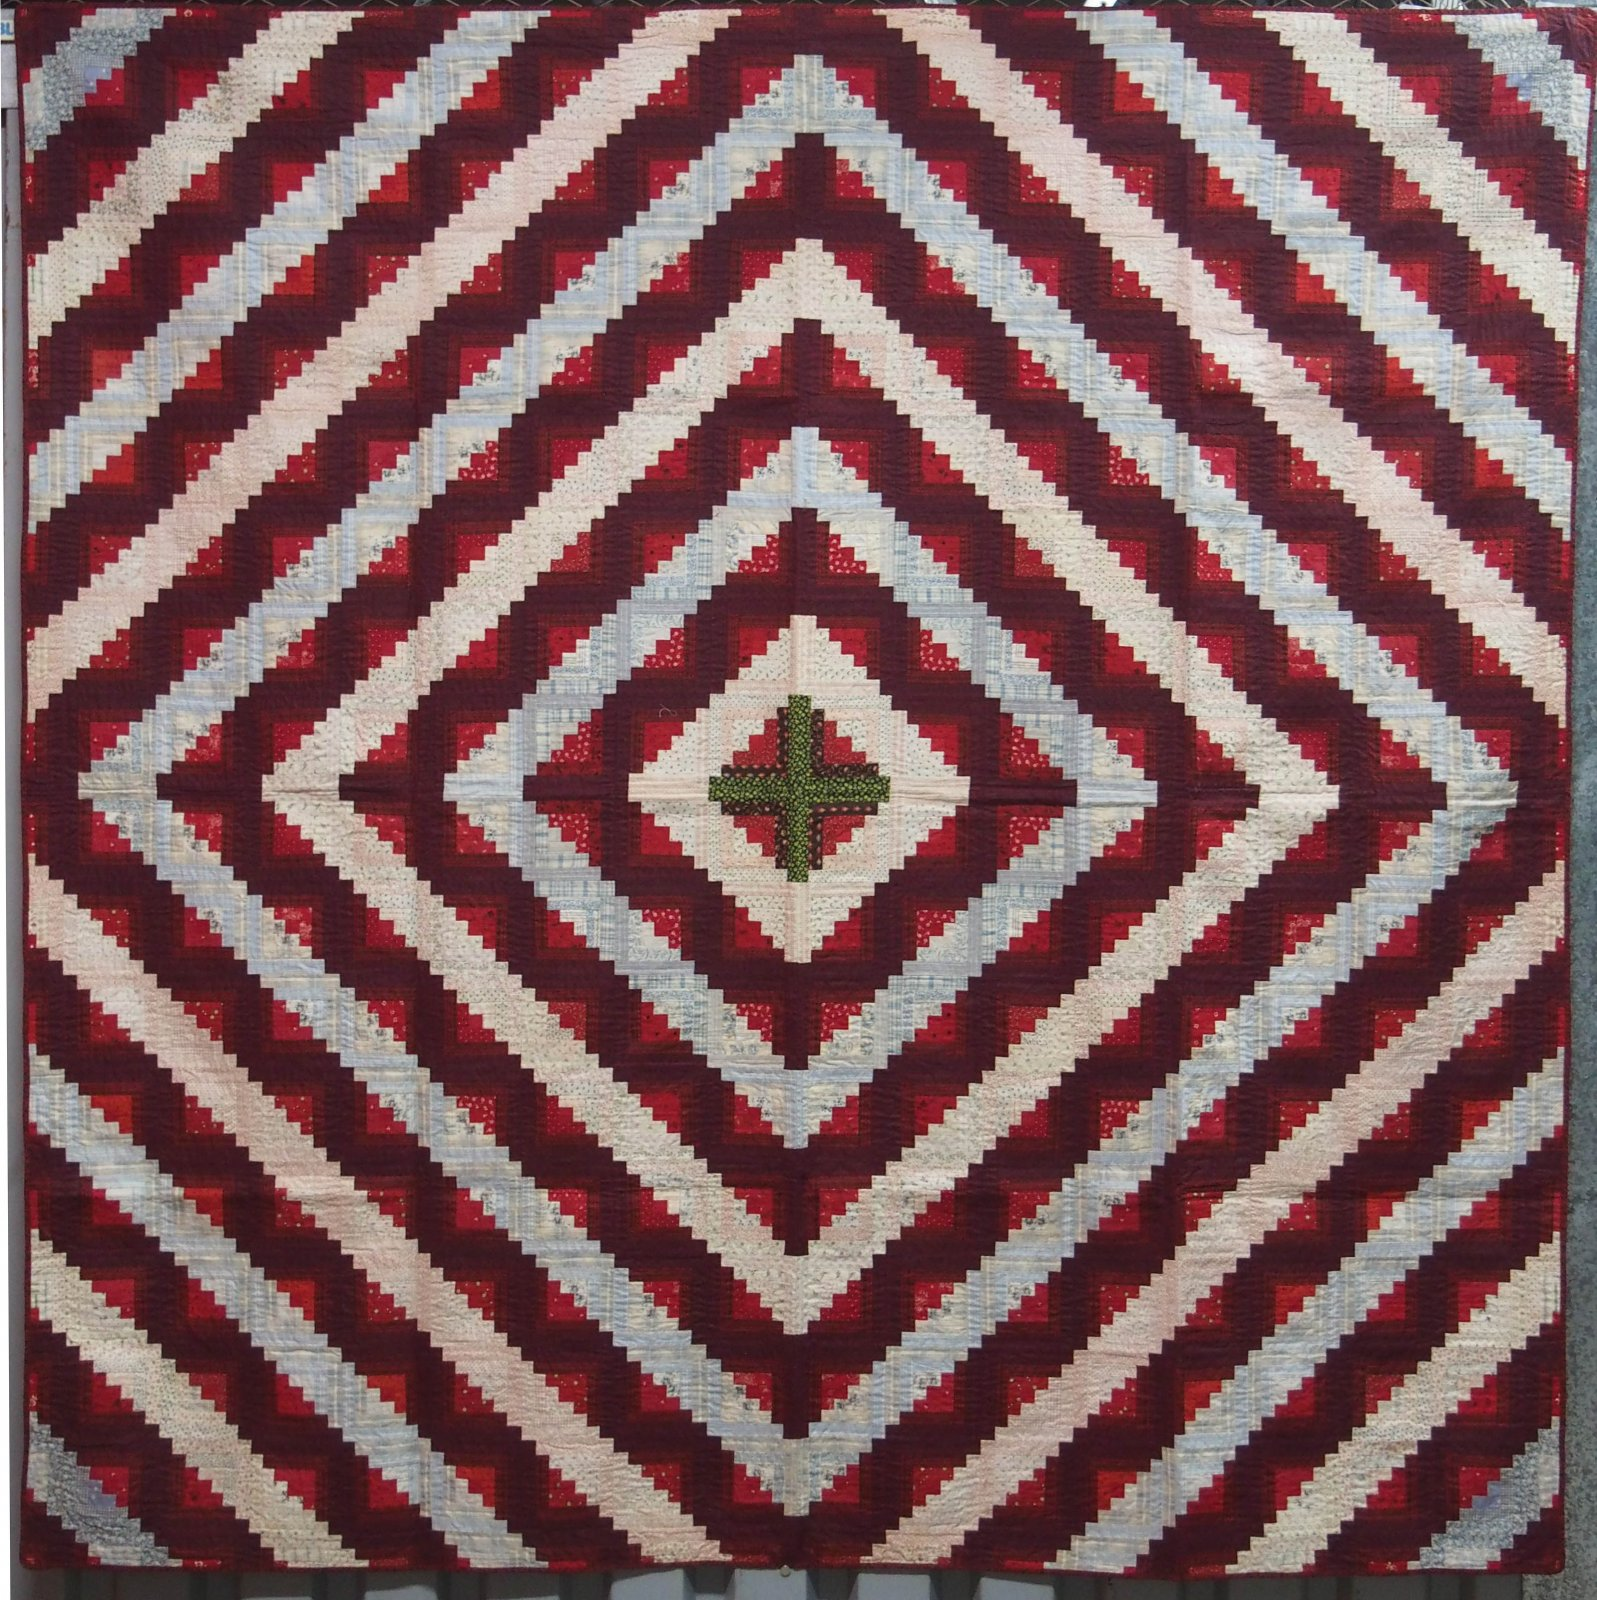 LOG CABIN BARN RAISING ANTIQUE QUILT only prints in reds and whites